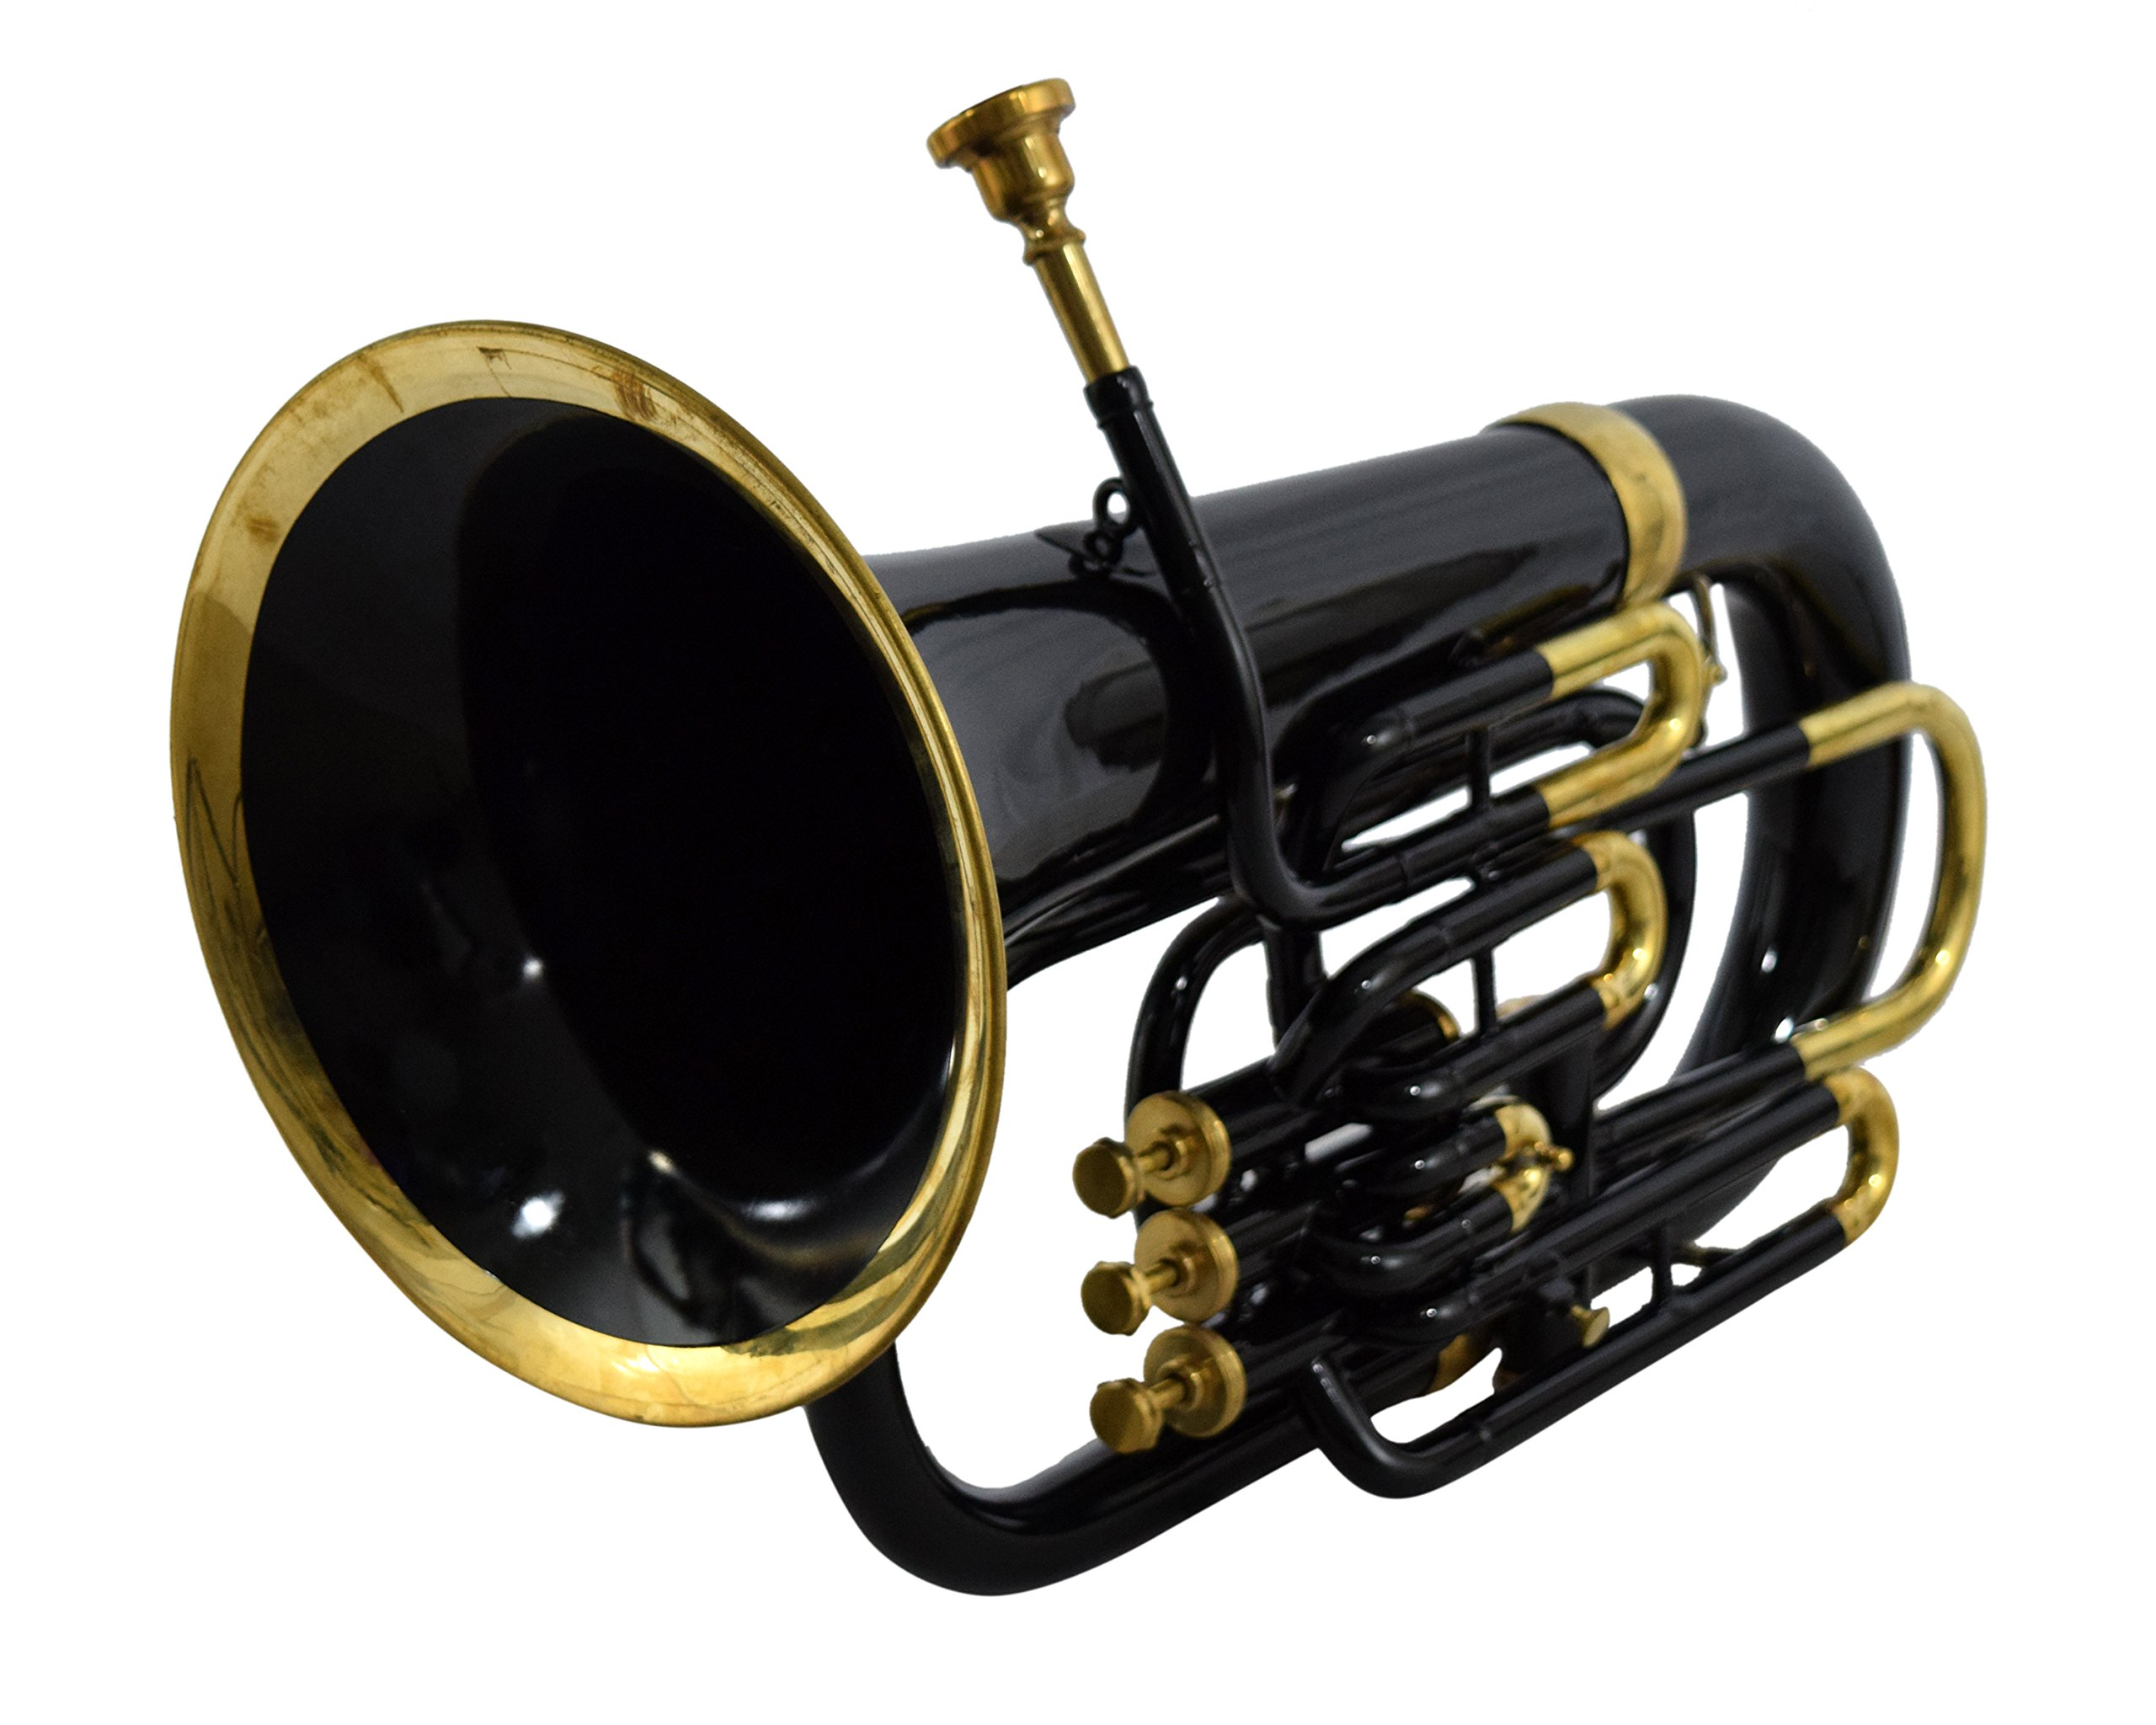 Moonflag Bb Euphonium Black 4 Valve by NASIR ALI